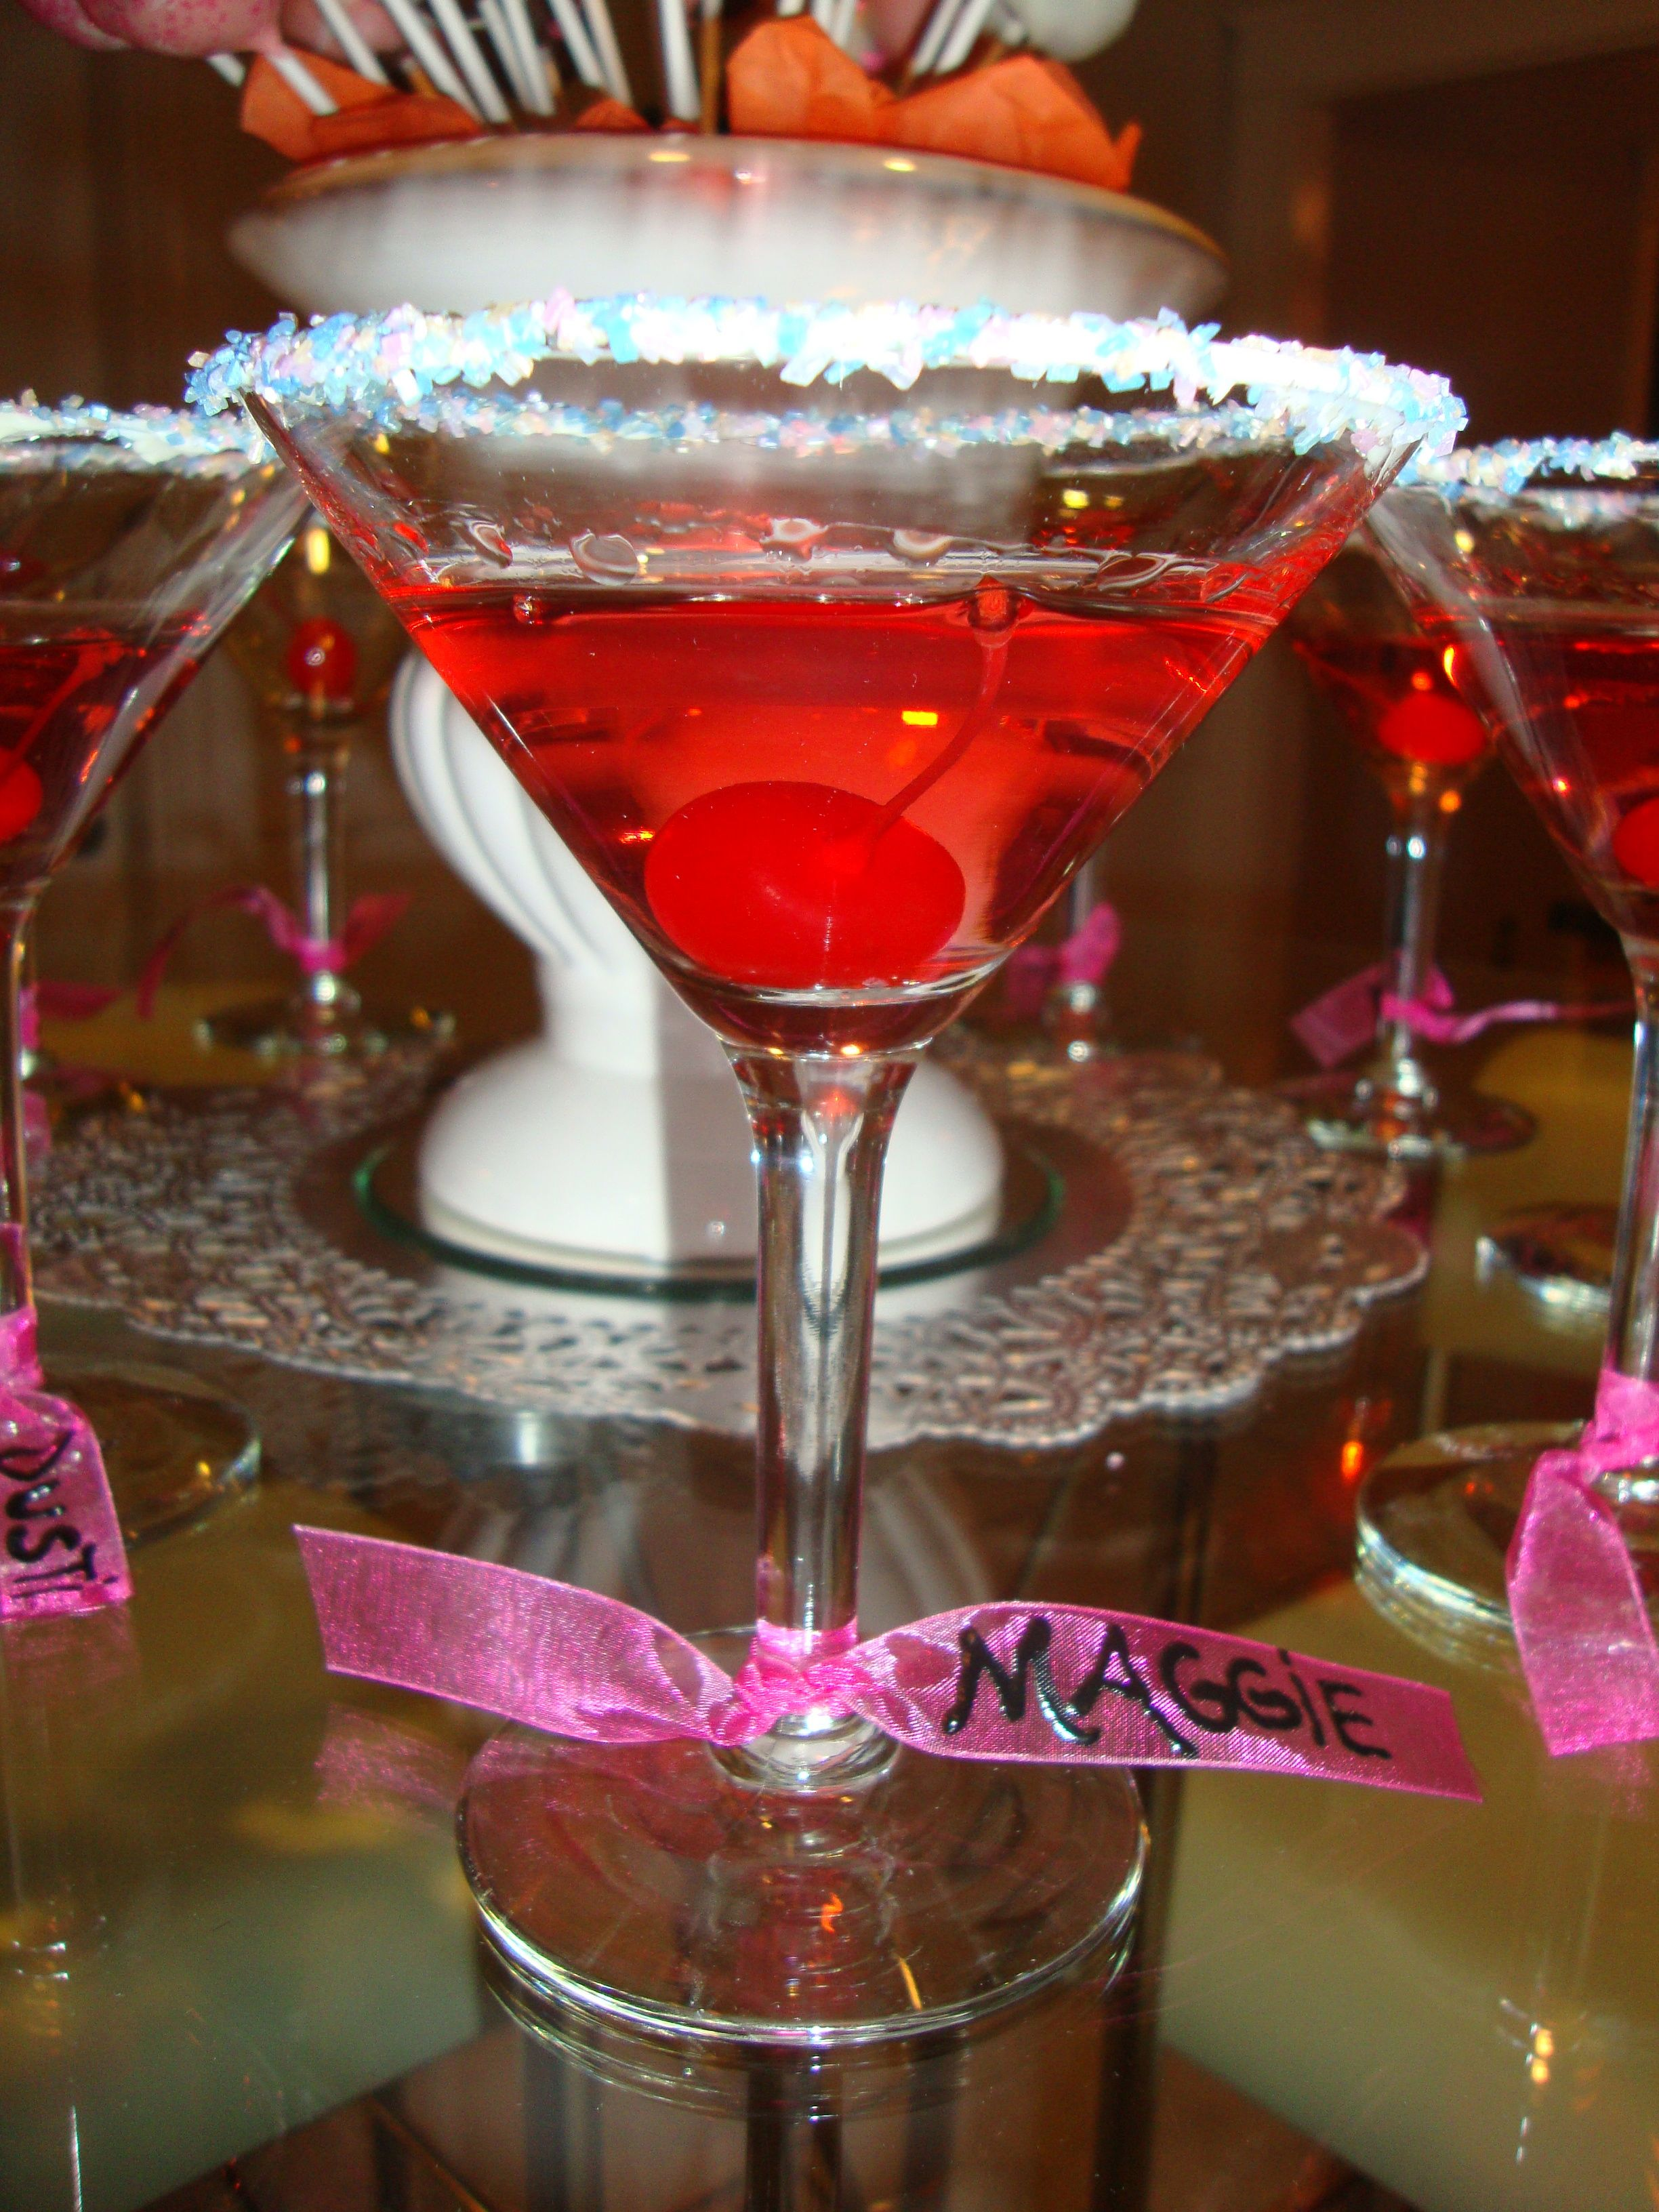 Birthday Cake Martini Cherry 15 Oz Vanilla Vodka Cranberry Juice And 5 Of Champagne Line The Rim With Frosting Dip Into Sprinkles